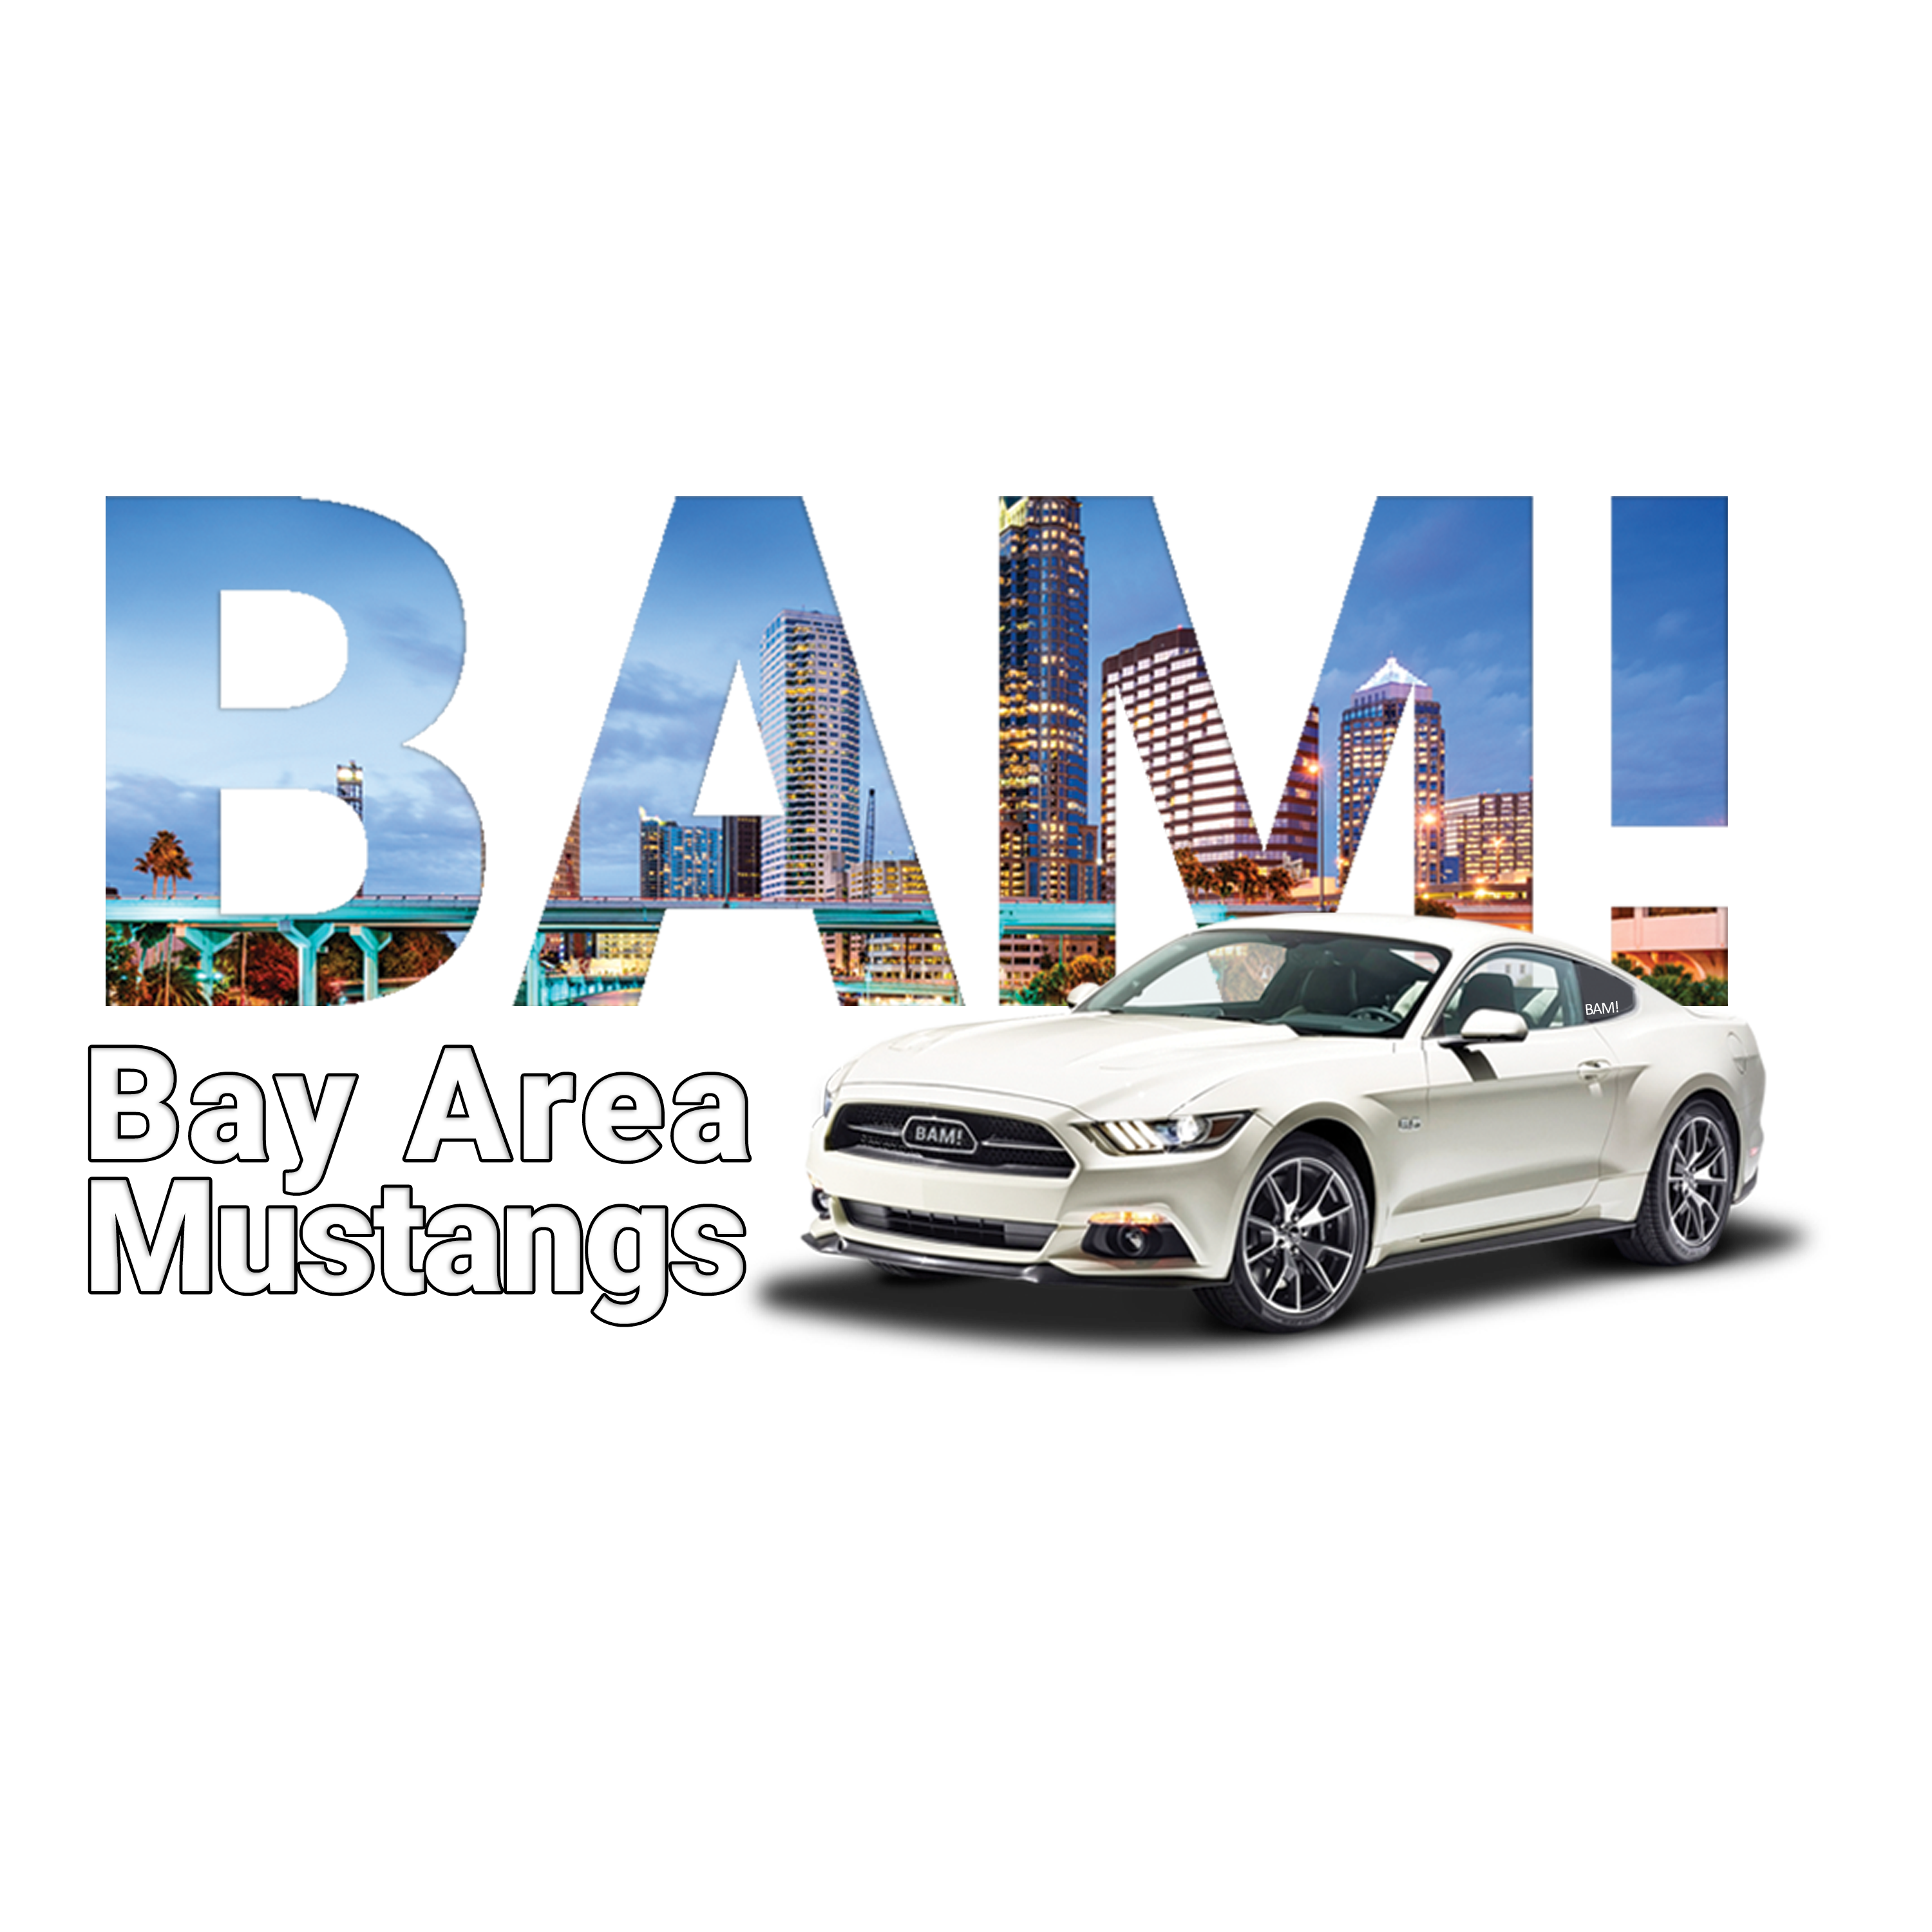 White Mustang with BAM in the background